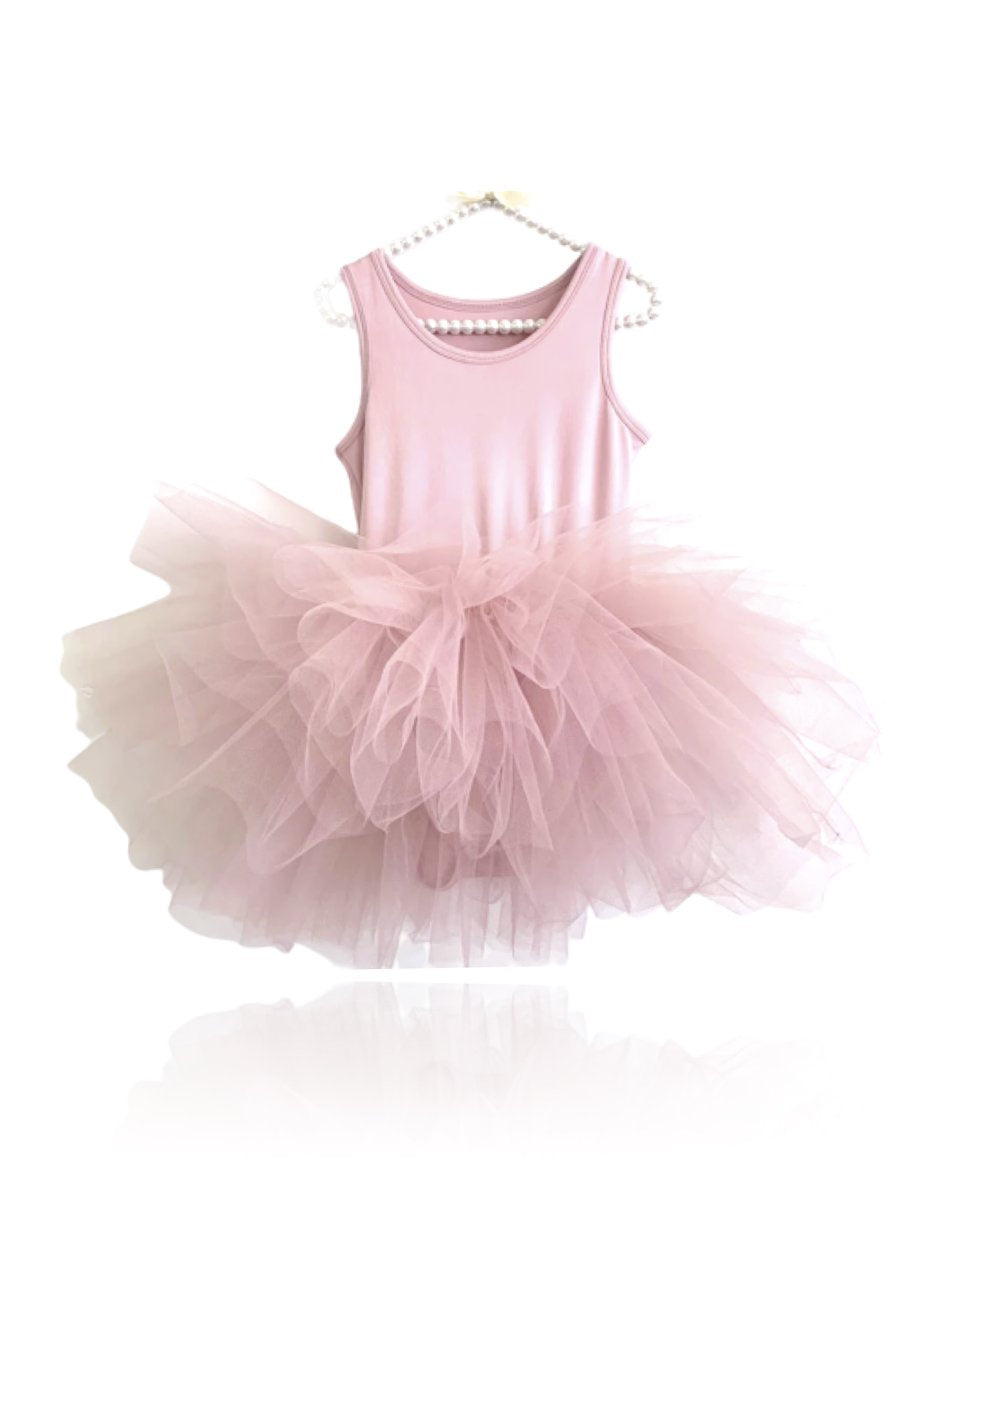 DOLLY BY LE PETIT TOM ® TIMELESS TUTU DRESS PINK